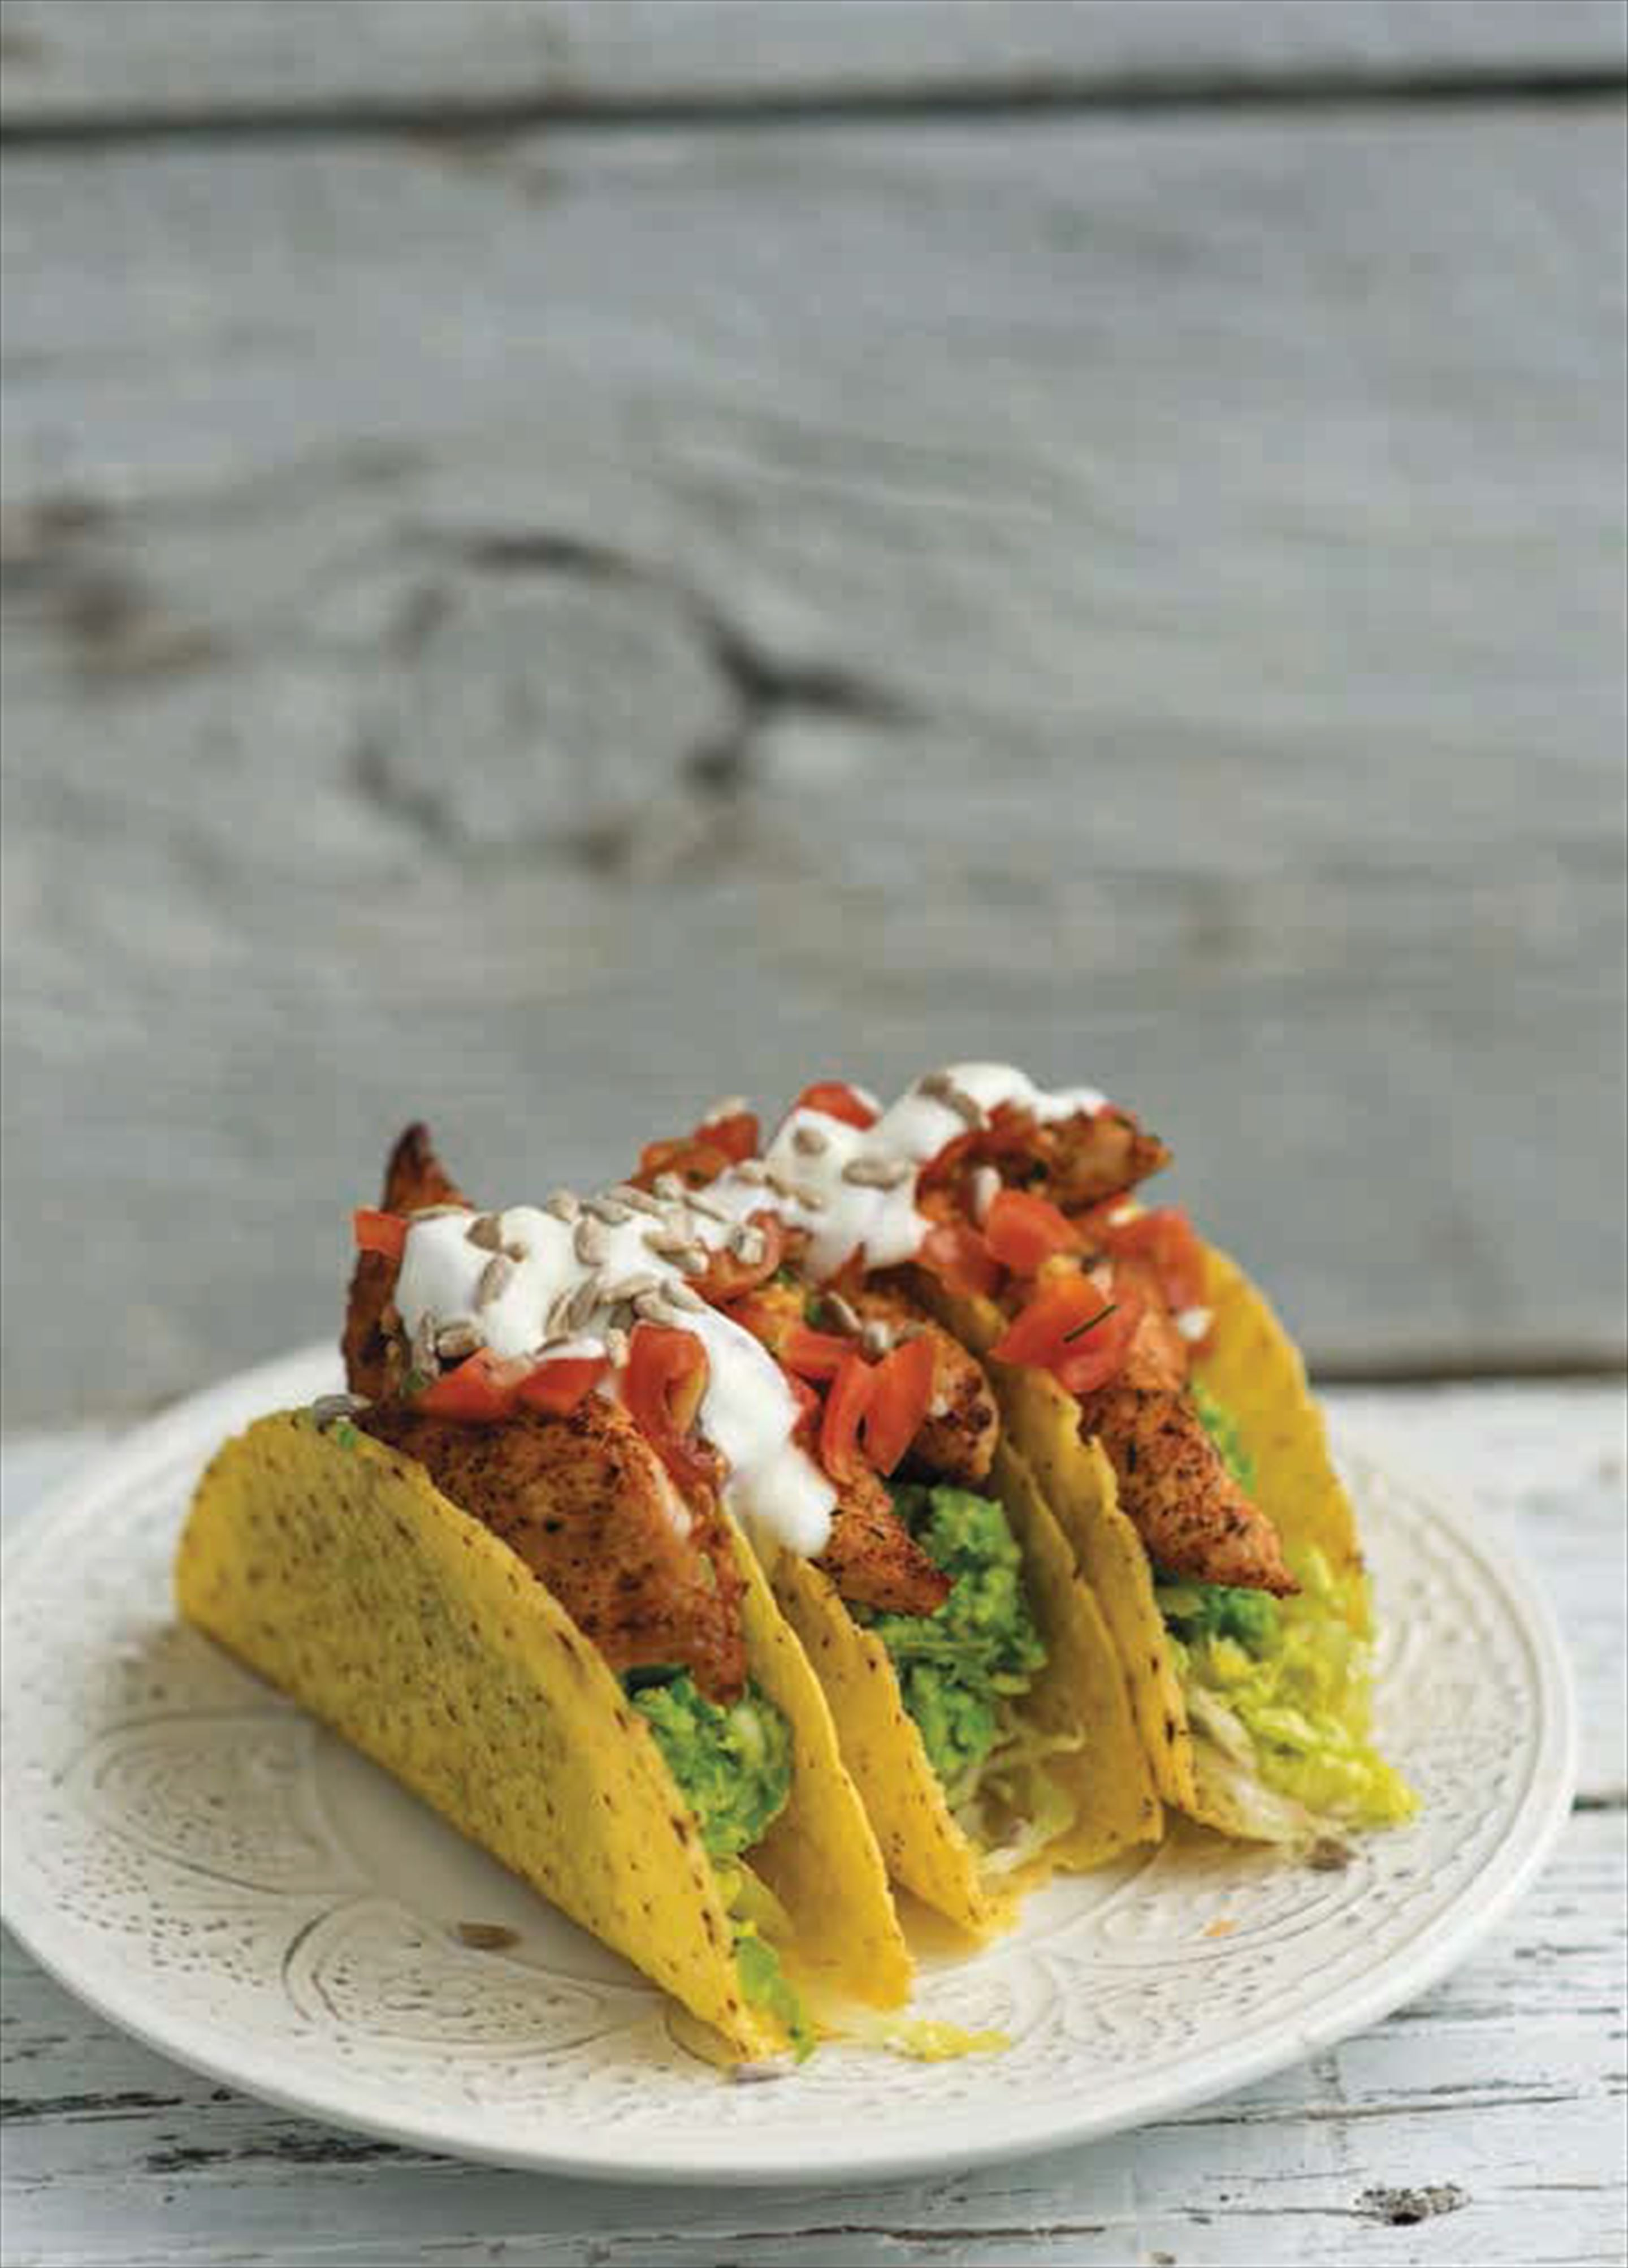 Blackened chicken tacos with avocado and pea guacamole